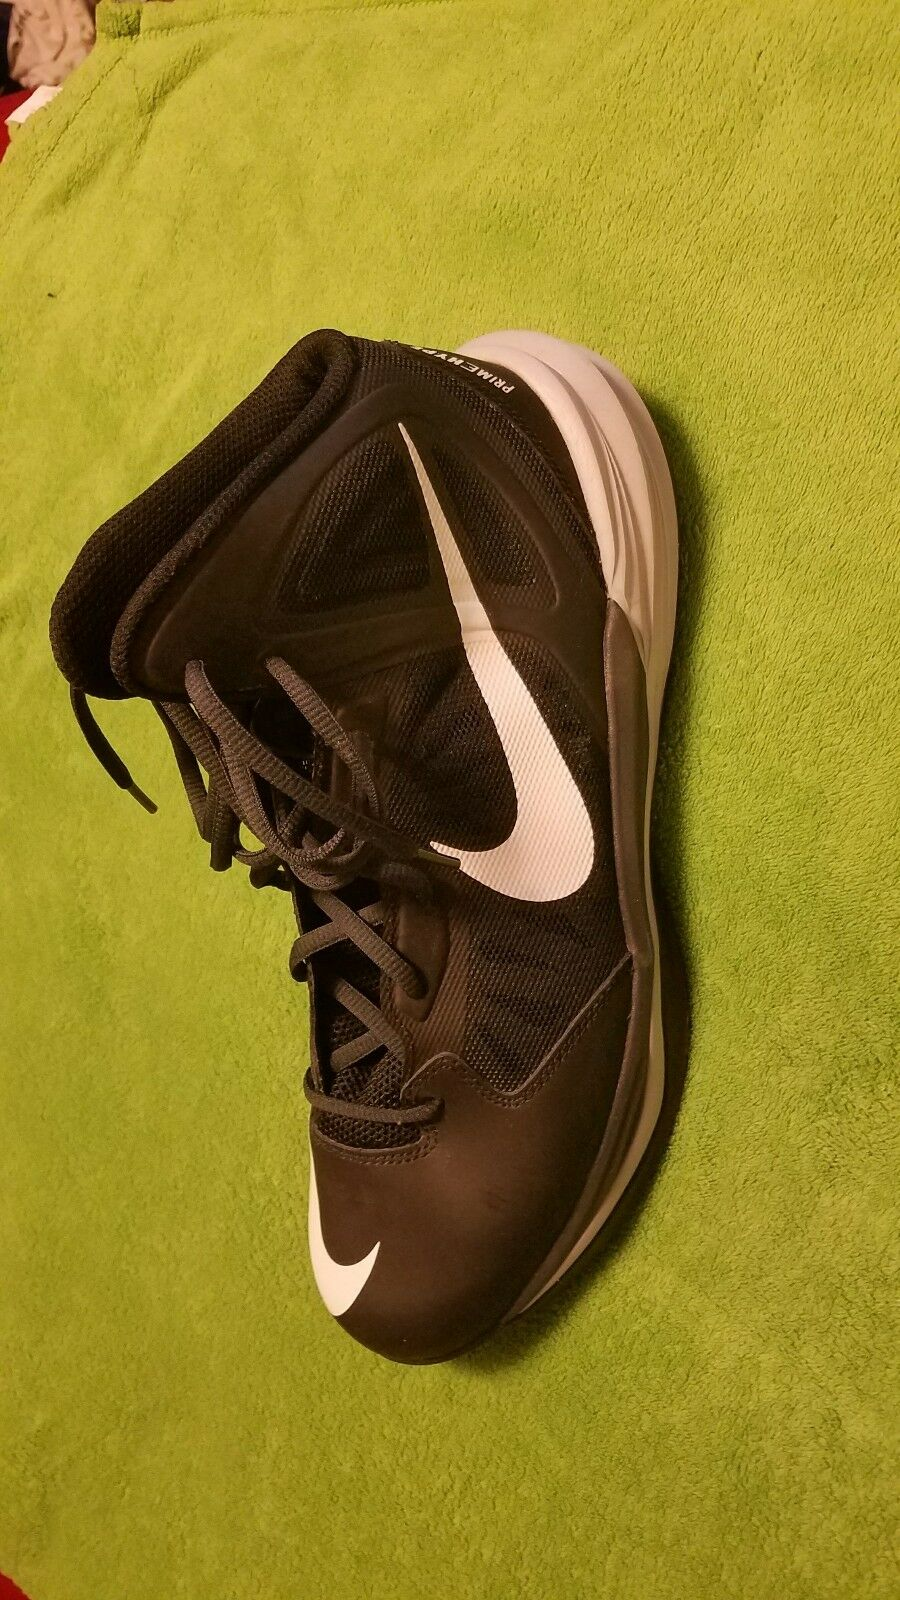 NEW Nike Basketball Mens Prime Hype DF Basketball Nike Shoes Size 11 Black/Grey/White MSRP cfb54a